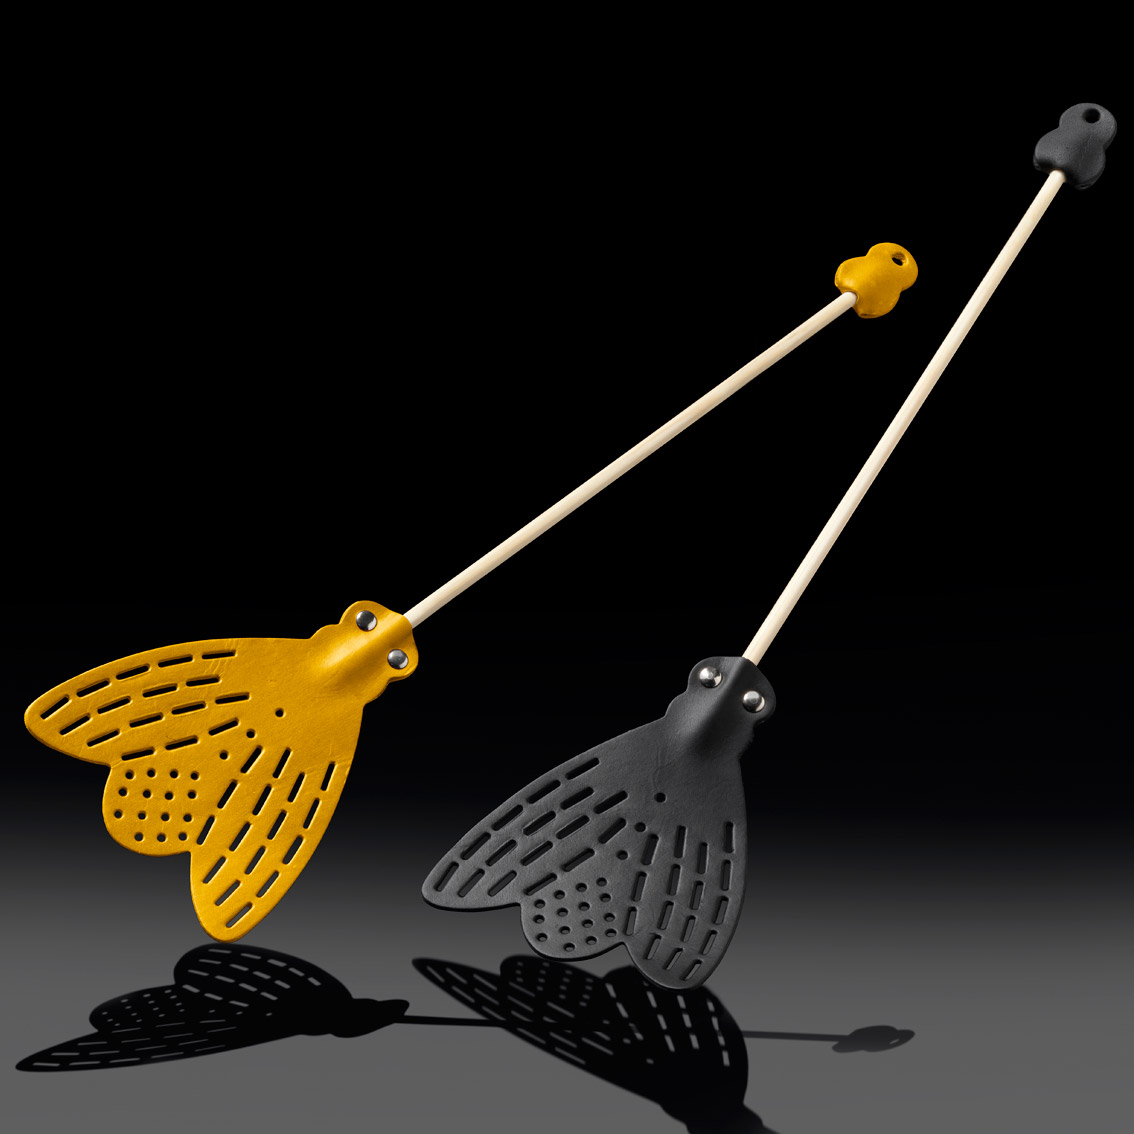 Fly Fly fly swatters